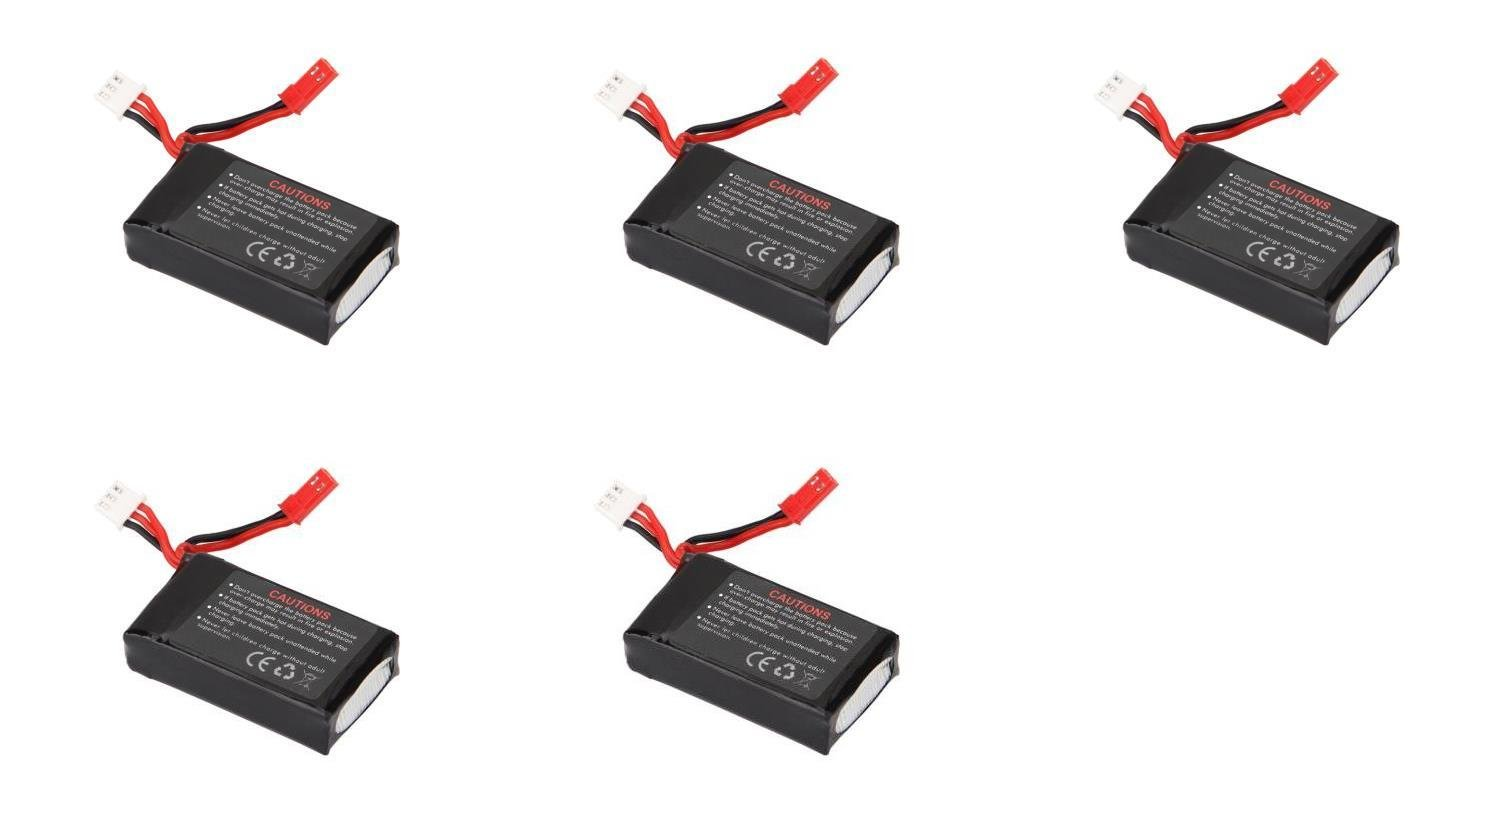 5 x Quantity of Walkera Rodeo 110 FPV Racing Quadcopter Rodeo 110-Z-21 Li-Po Battery 7.4V 850mAh 25C 2S 2 Cell Power Pack Lithium Polymer Fuel Source